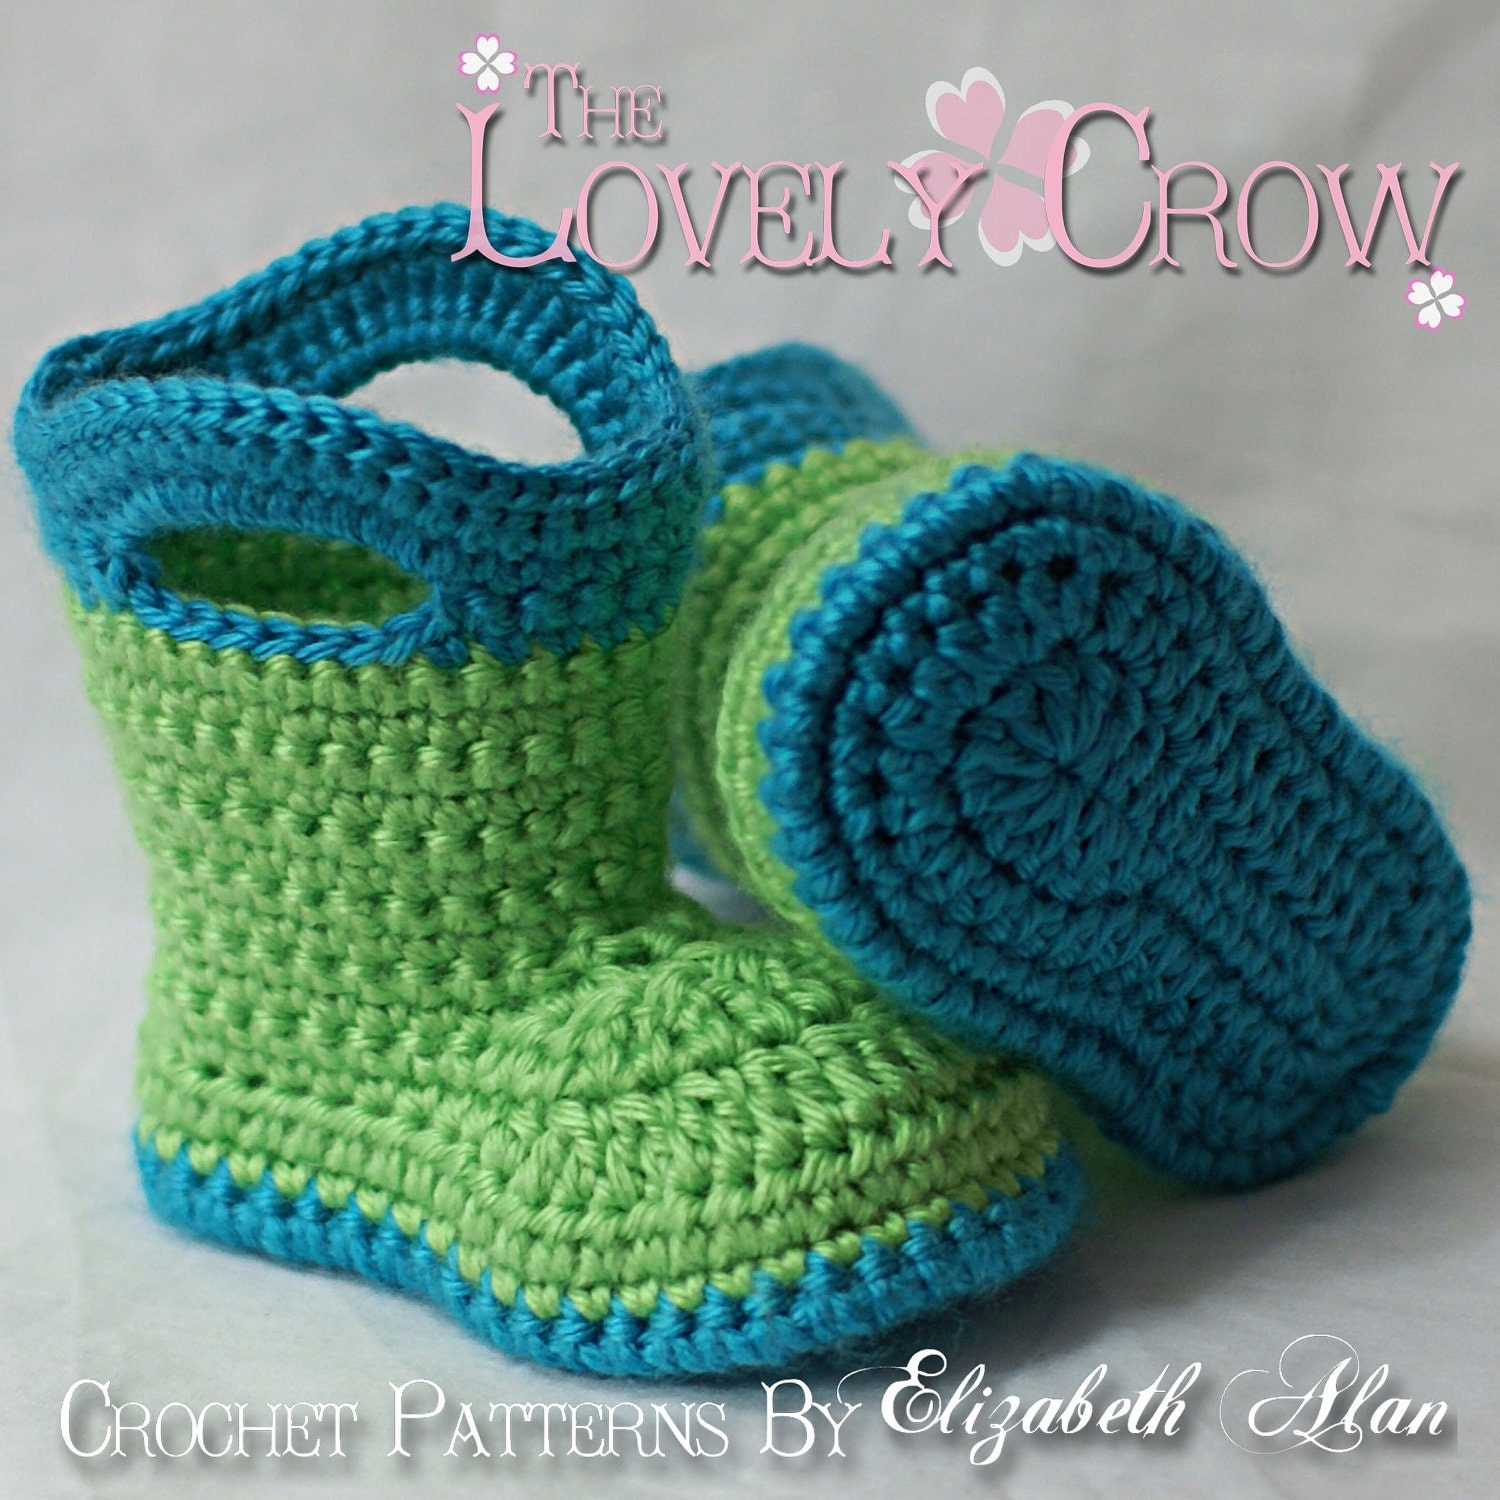 Free Crochet Pattern Baby Booties Images & Pictures - Becuo